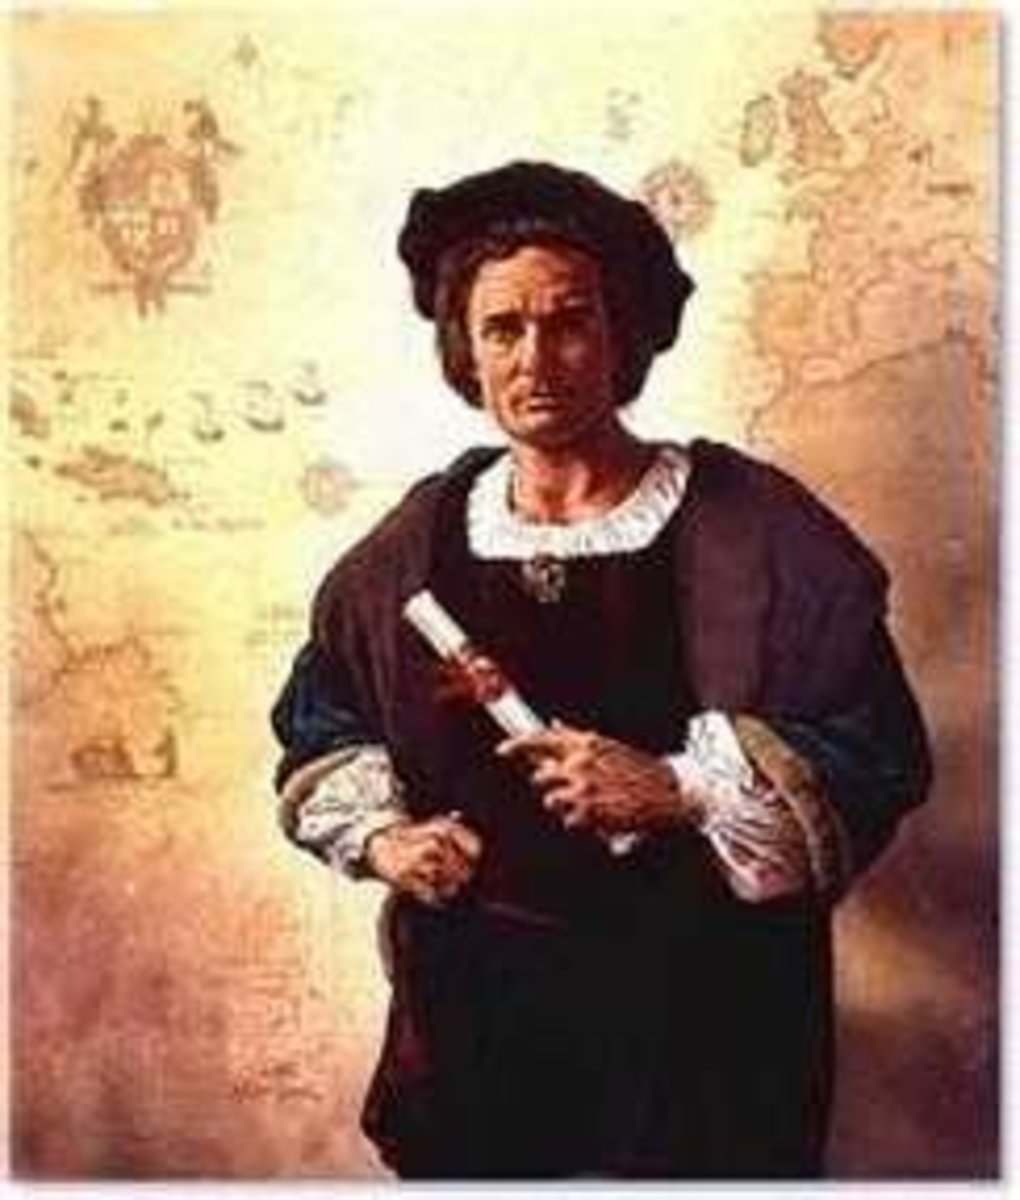 Christopher Columbus Image Credit: http://www.chlive.org/